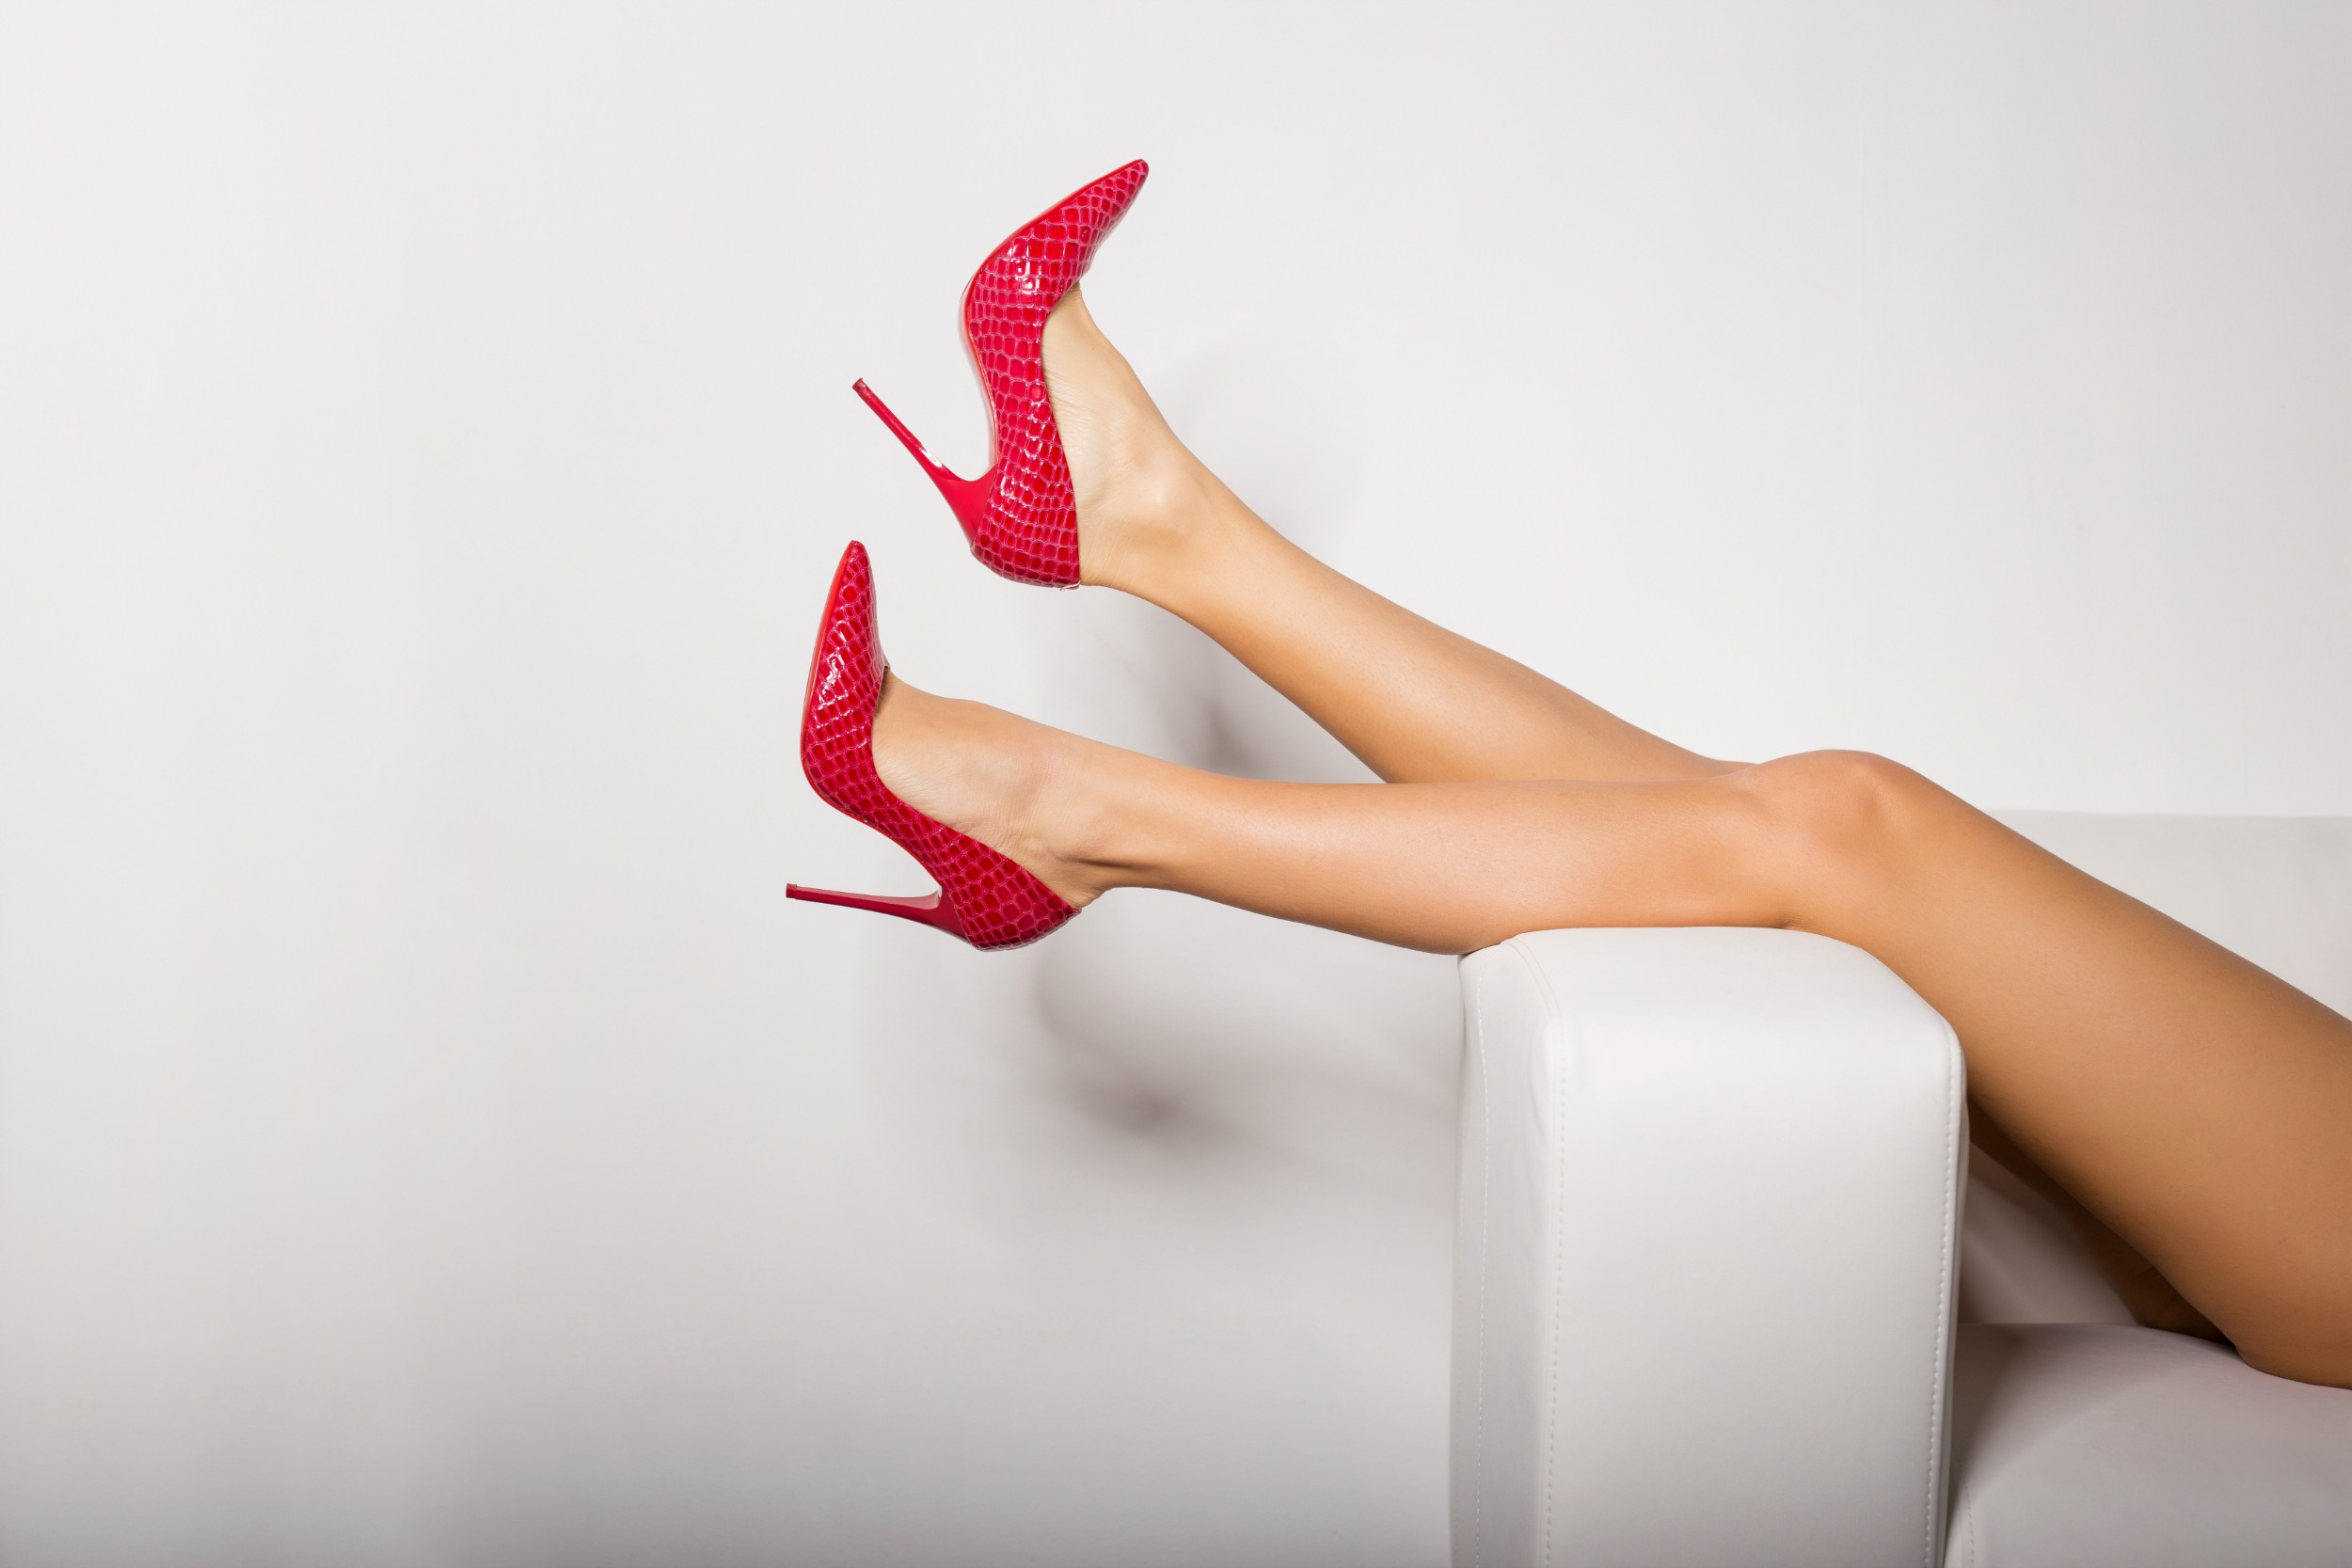 ec4b77757ef The real reasons women wear heels